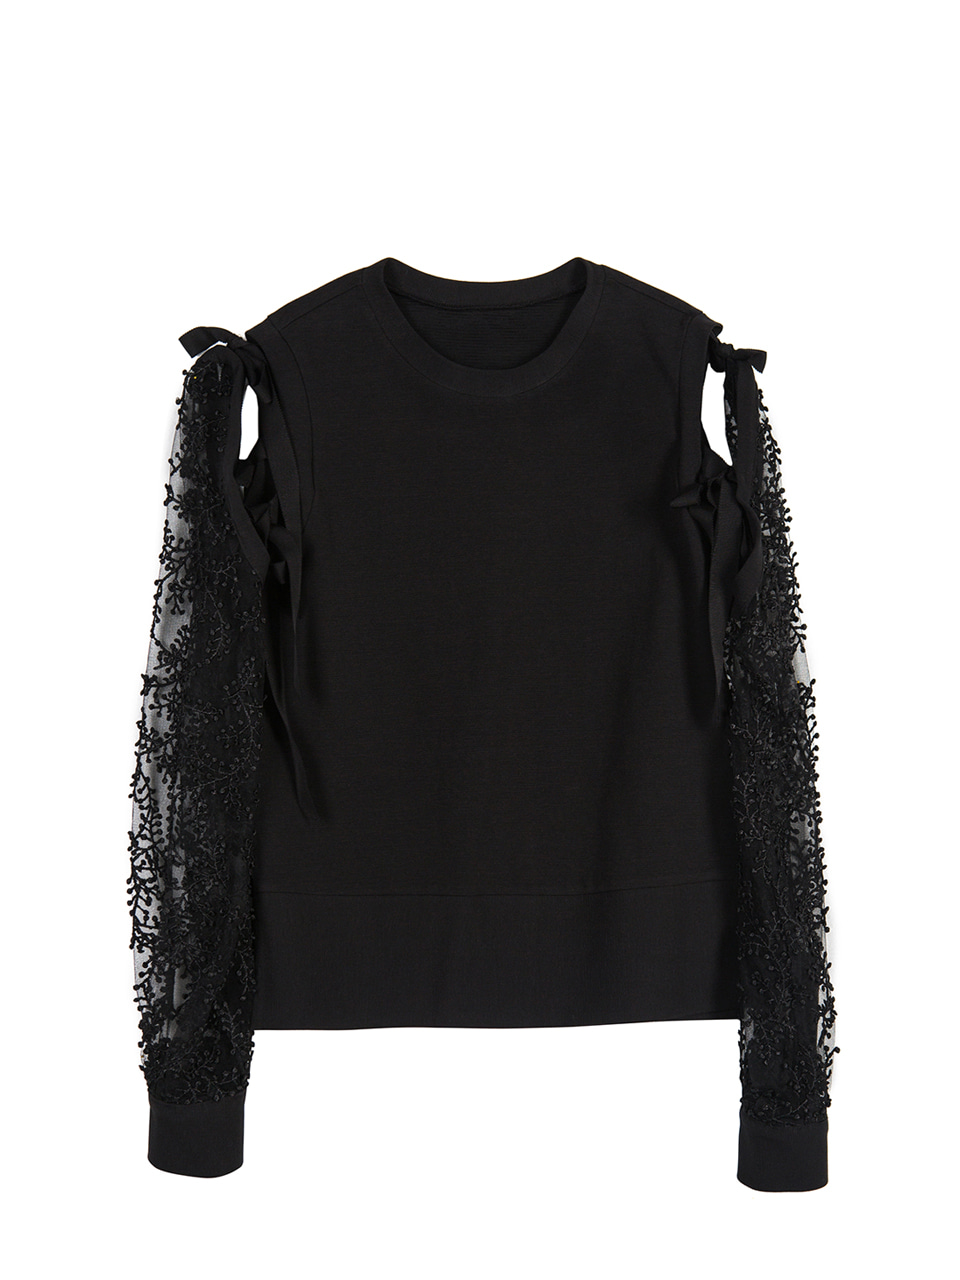 Bell Laced Pullover - black